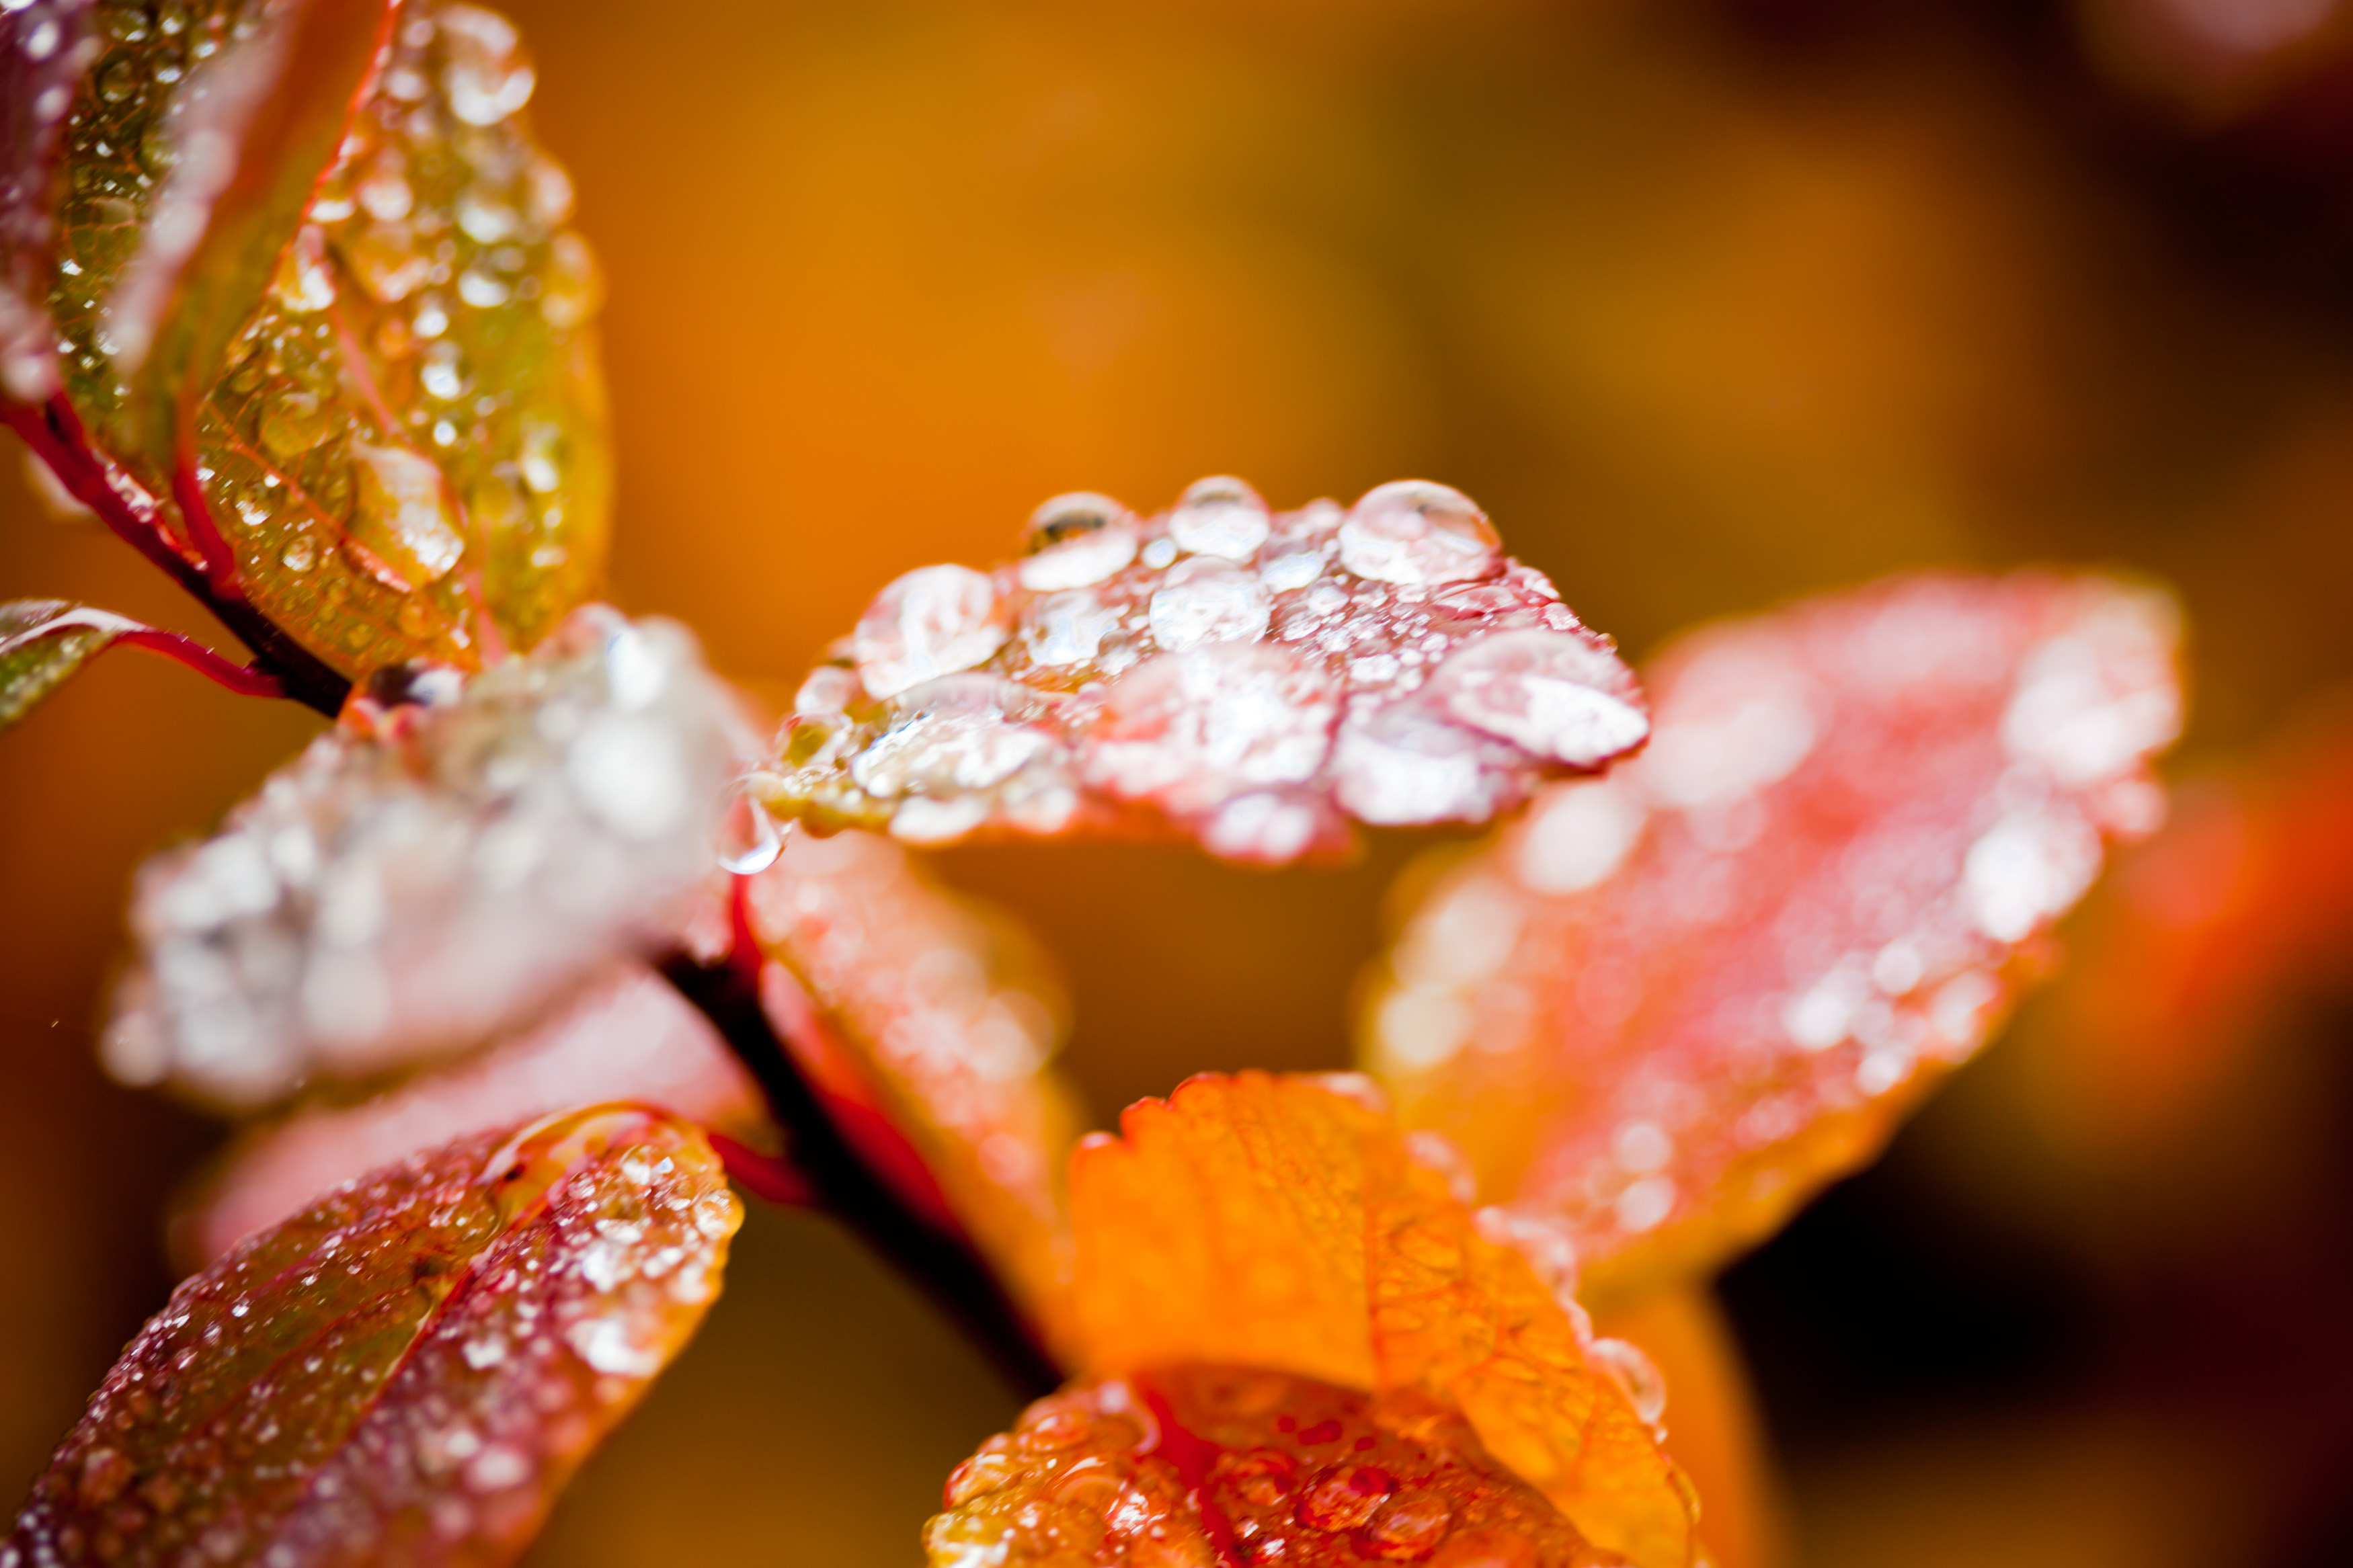 Droplets on foliage in autumn photo